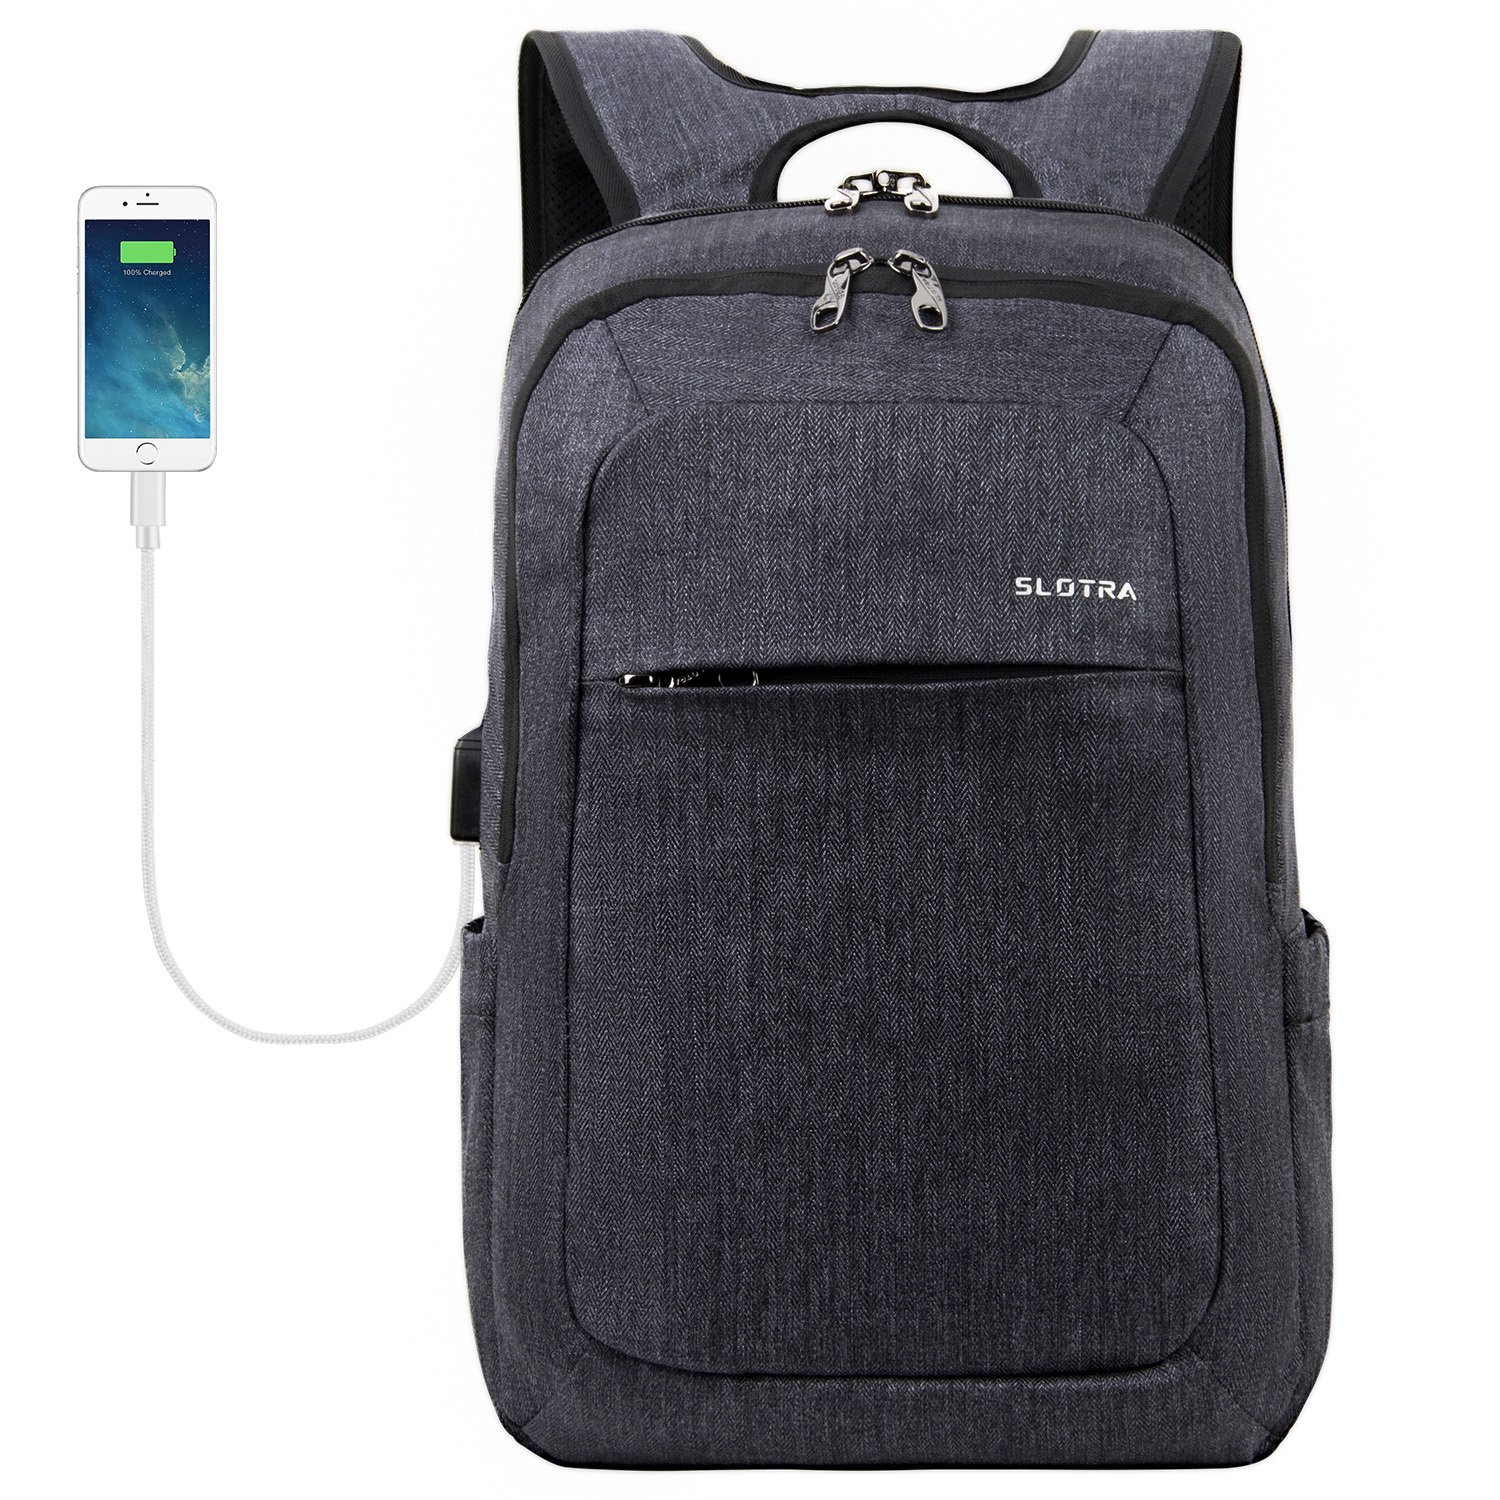 bf06a0aee3d3 SLOTRA Slim Laptop Backpack with USB Charging Port up to 15.6